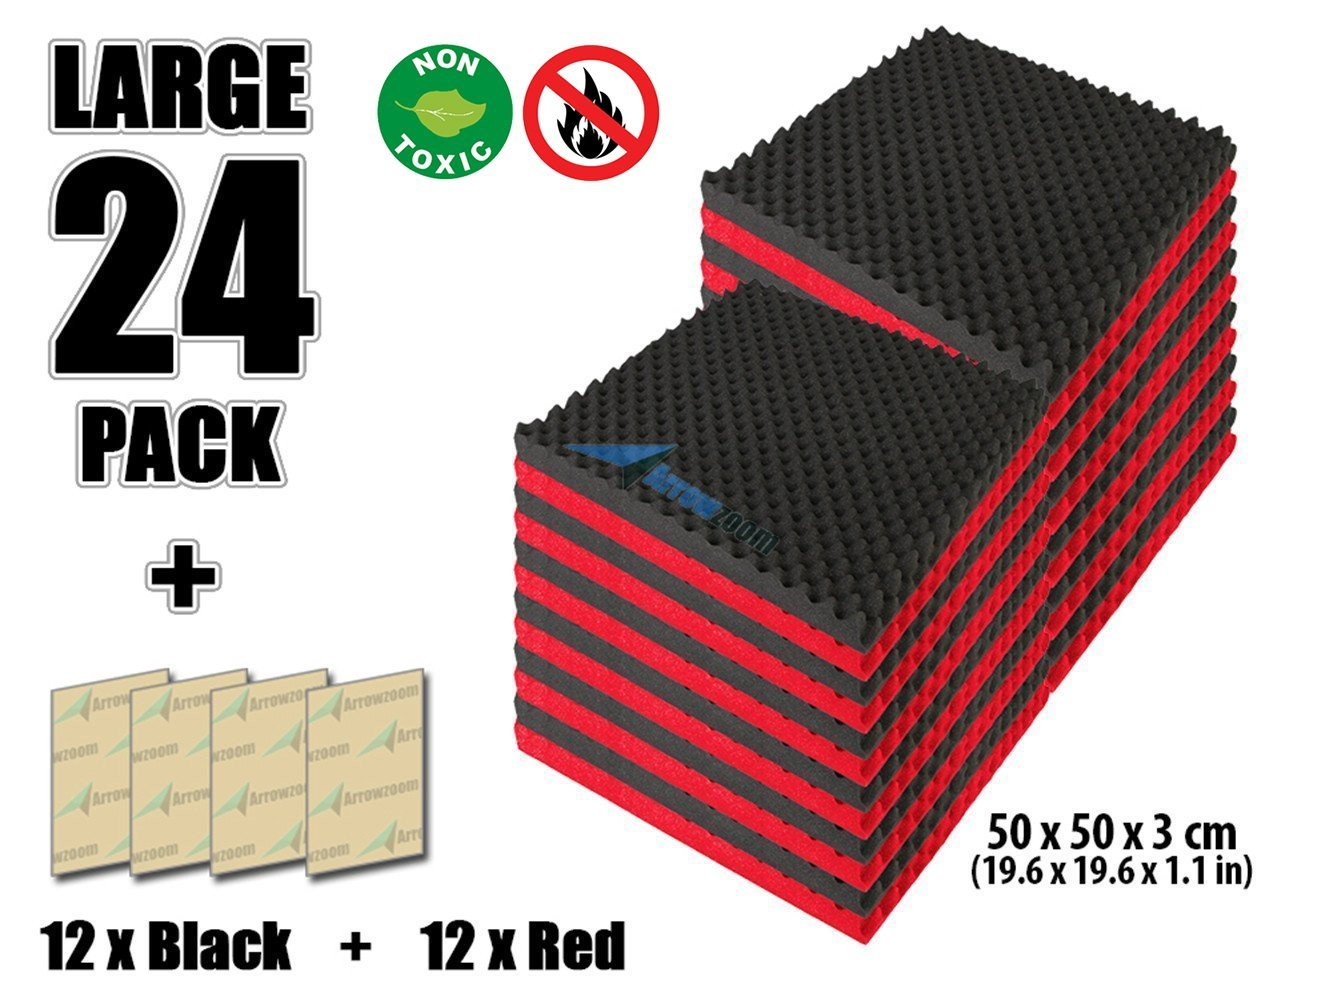 Convoluted Foam Soundproofing Egg Crate Acoustic Foam Studio Absorbing Tiles Pads Wall Panels RED/&Black 25 X 25 X 3 cm Arrowzoom New 24 Pack of Red /& Black